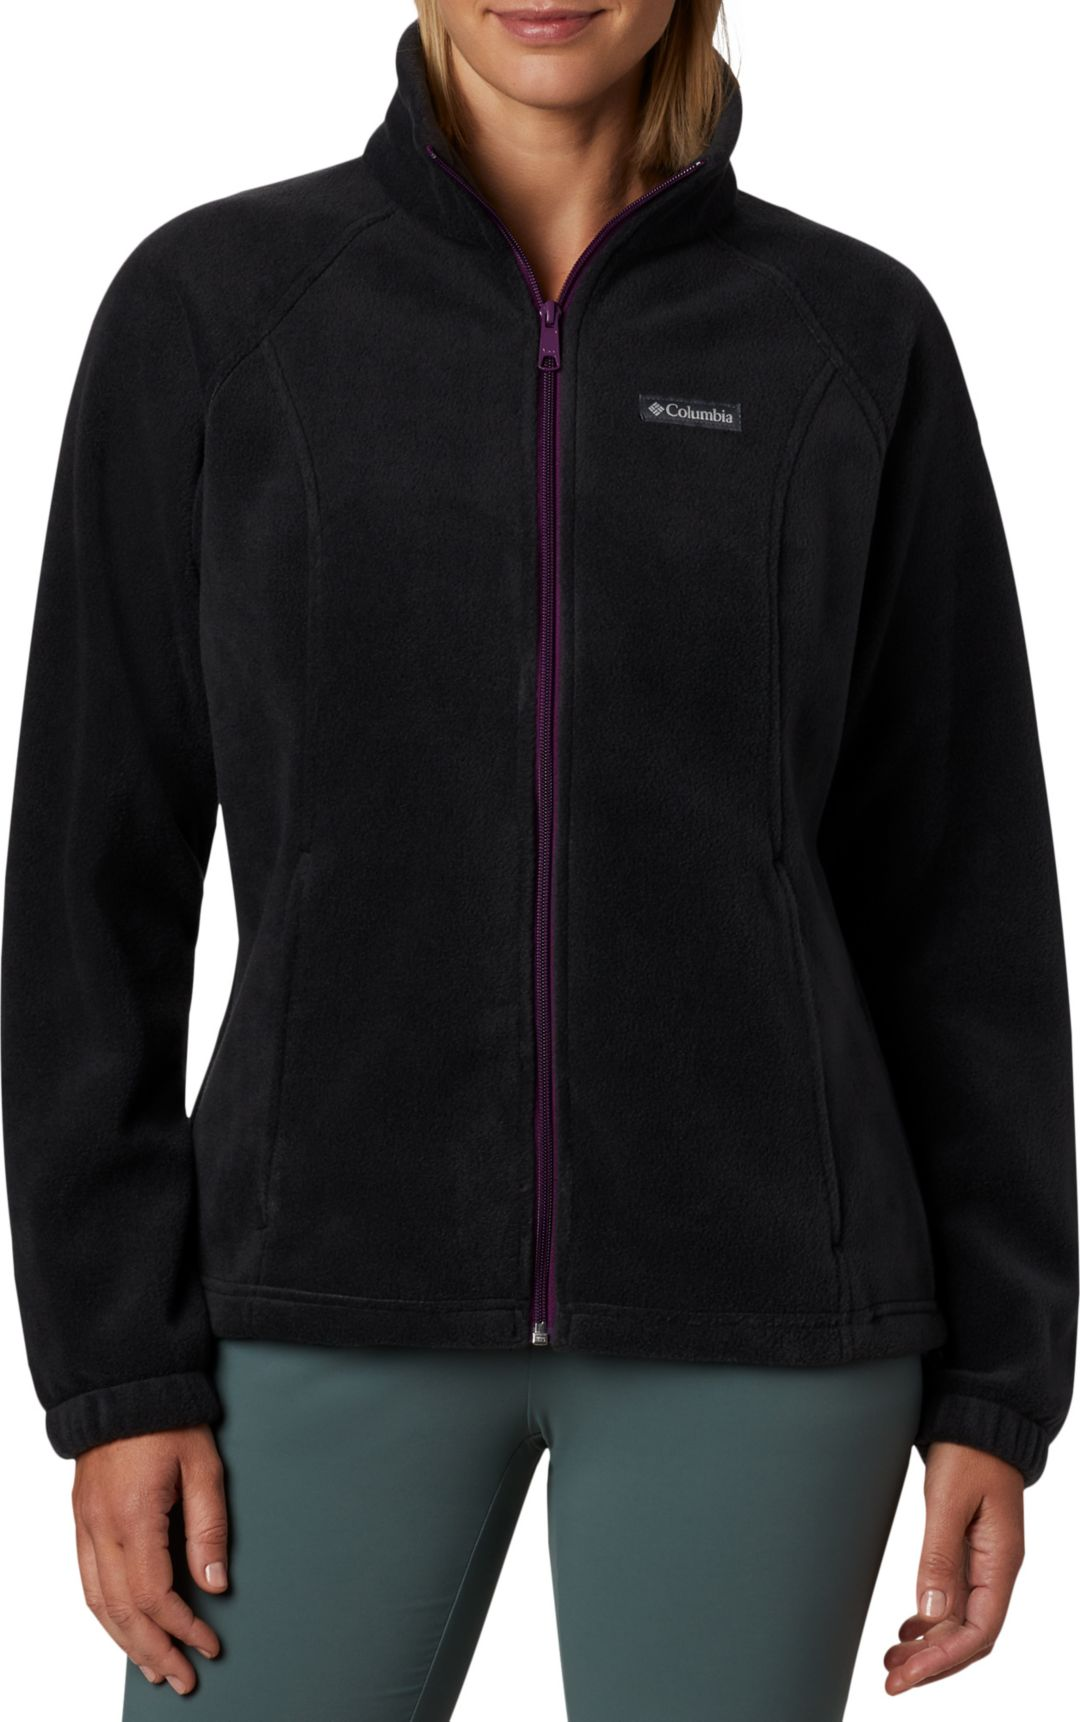 6404ac65e Columbia Women's Benton Springs Full Zip Fleece Jacket